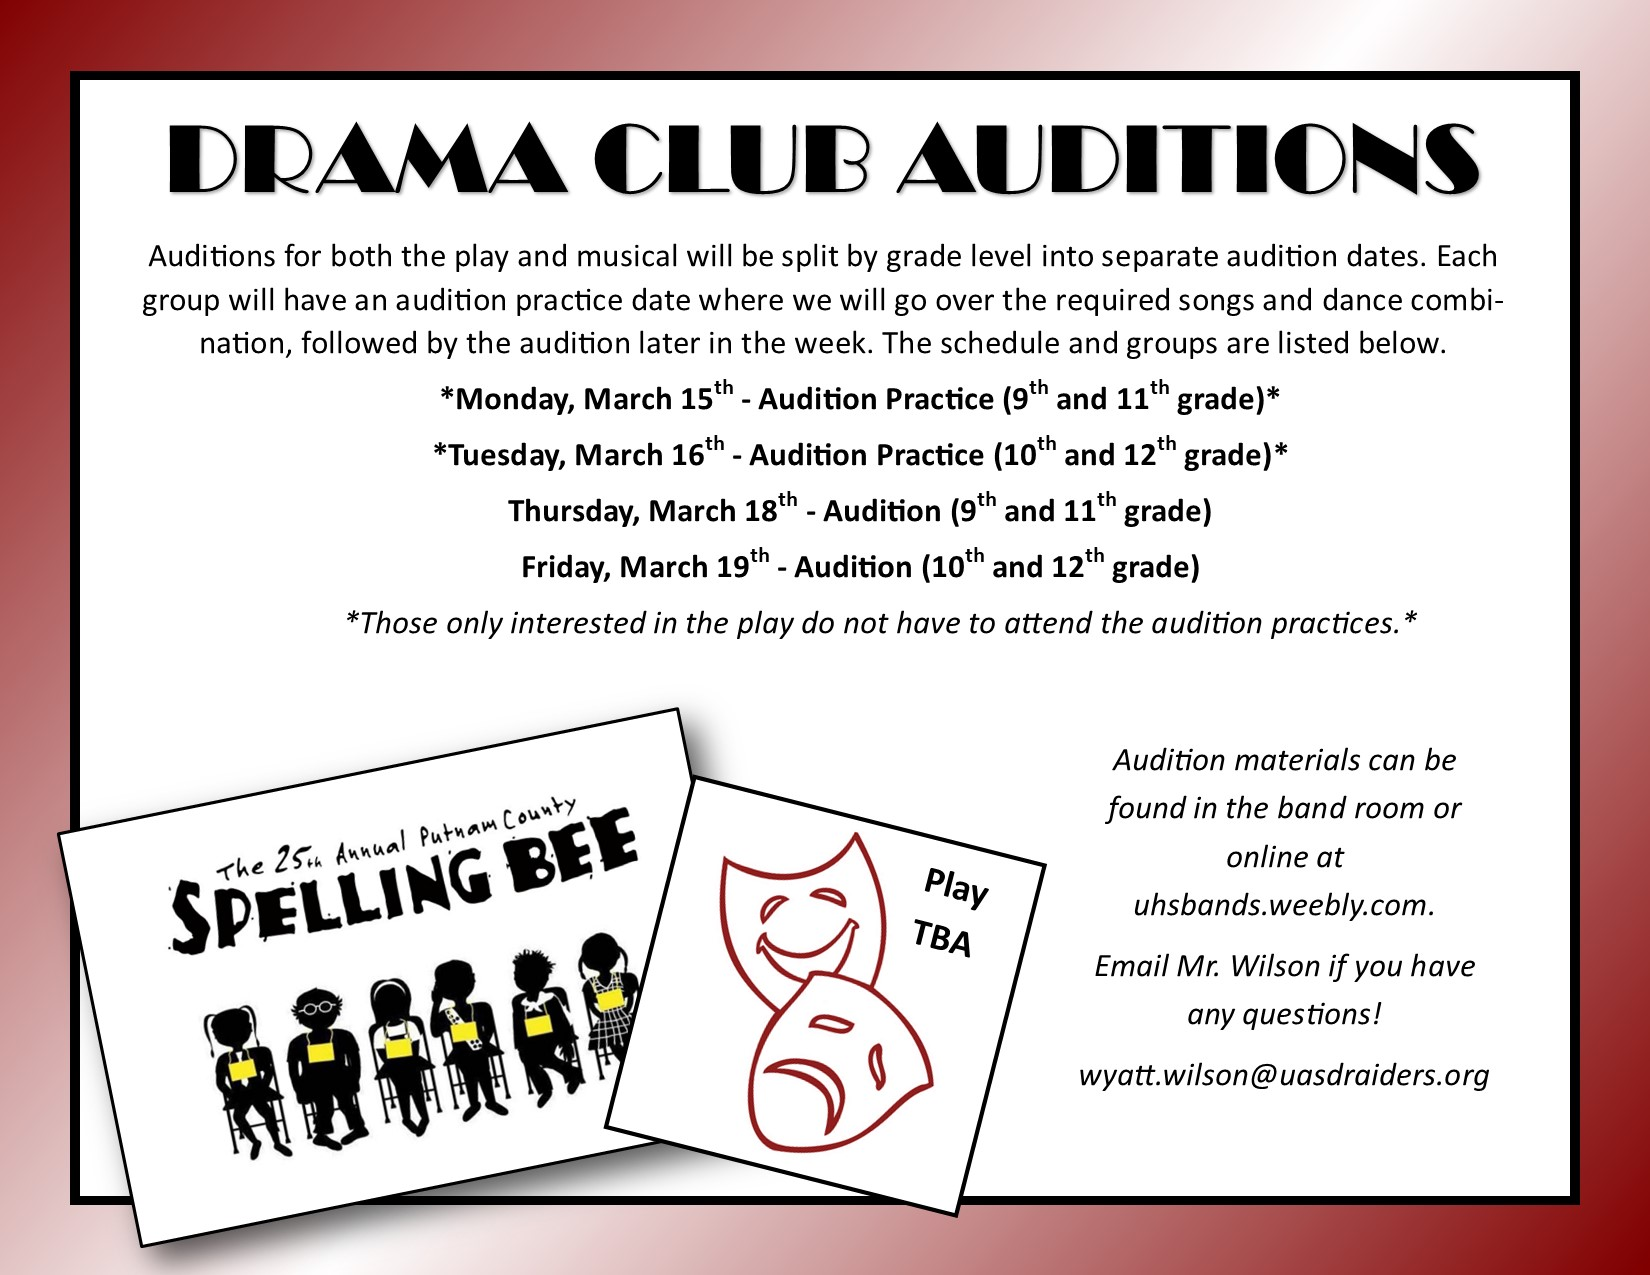 Drama Club Auditions